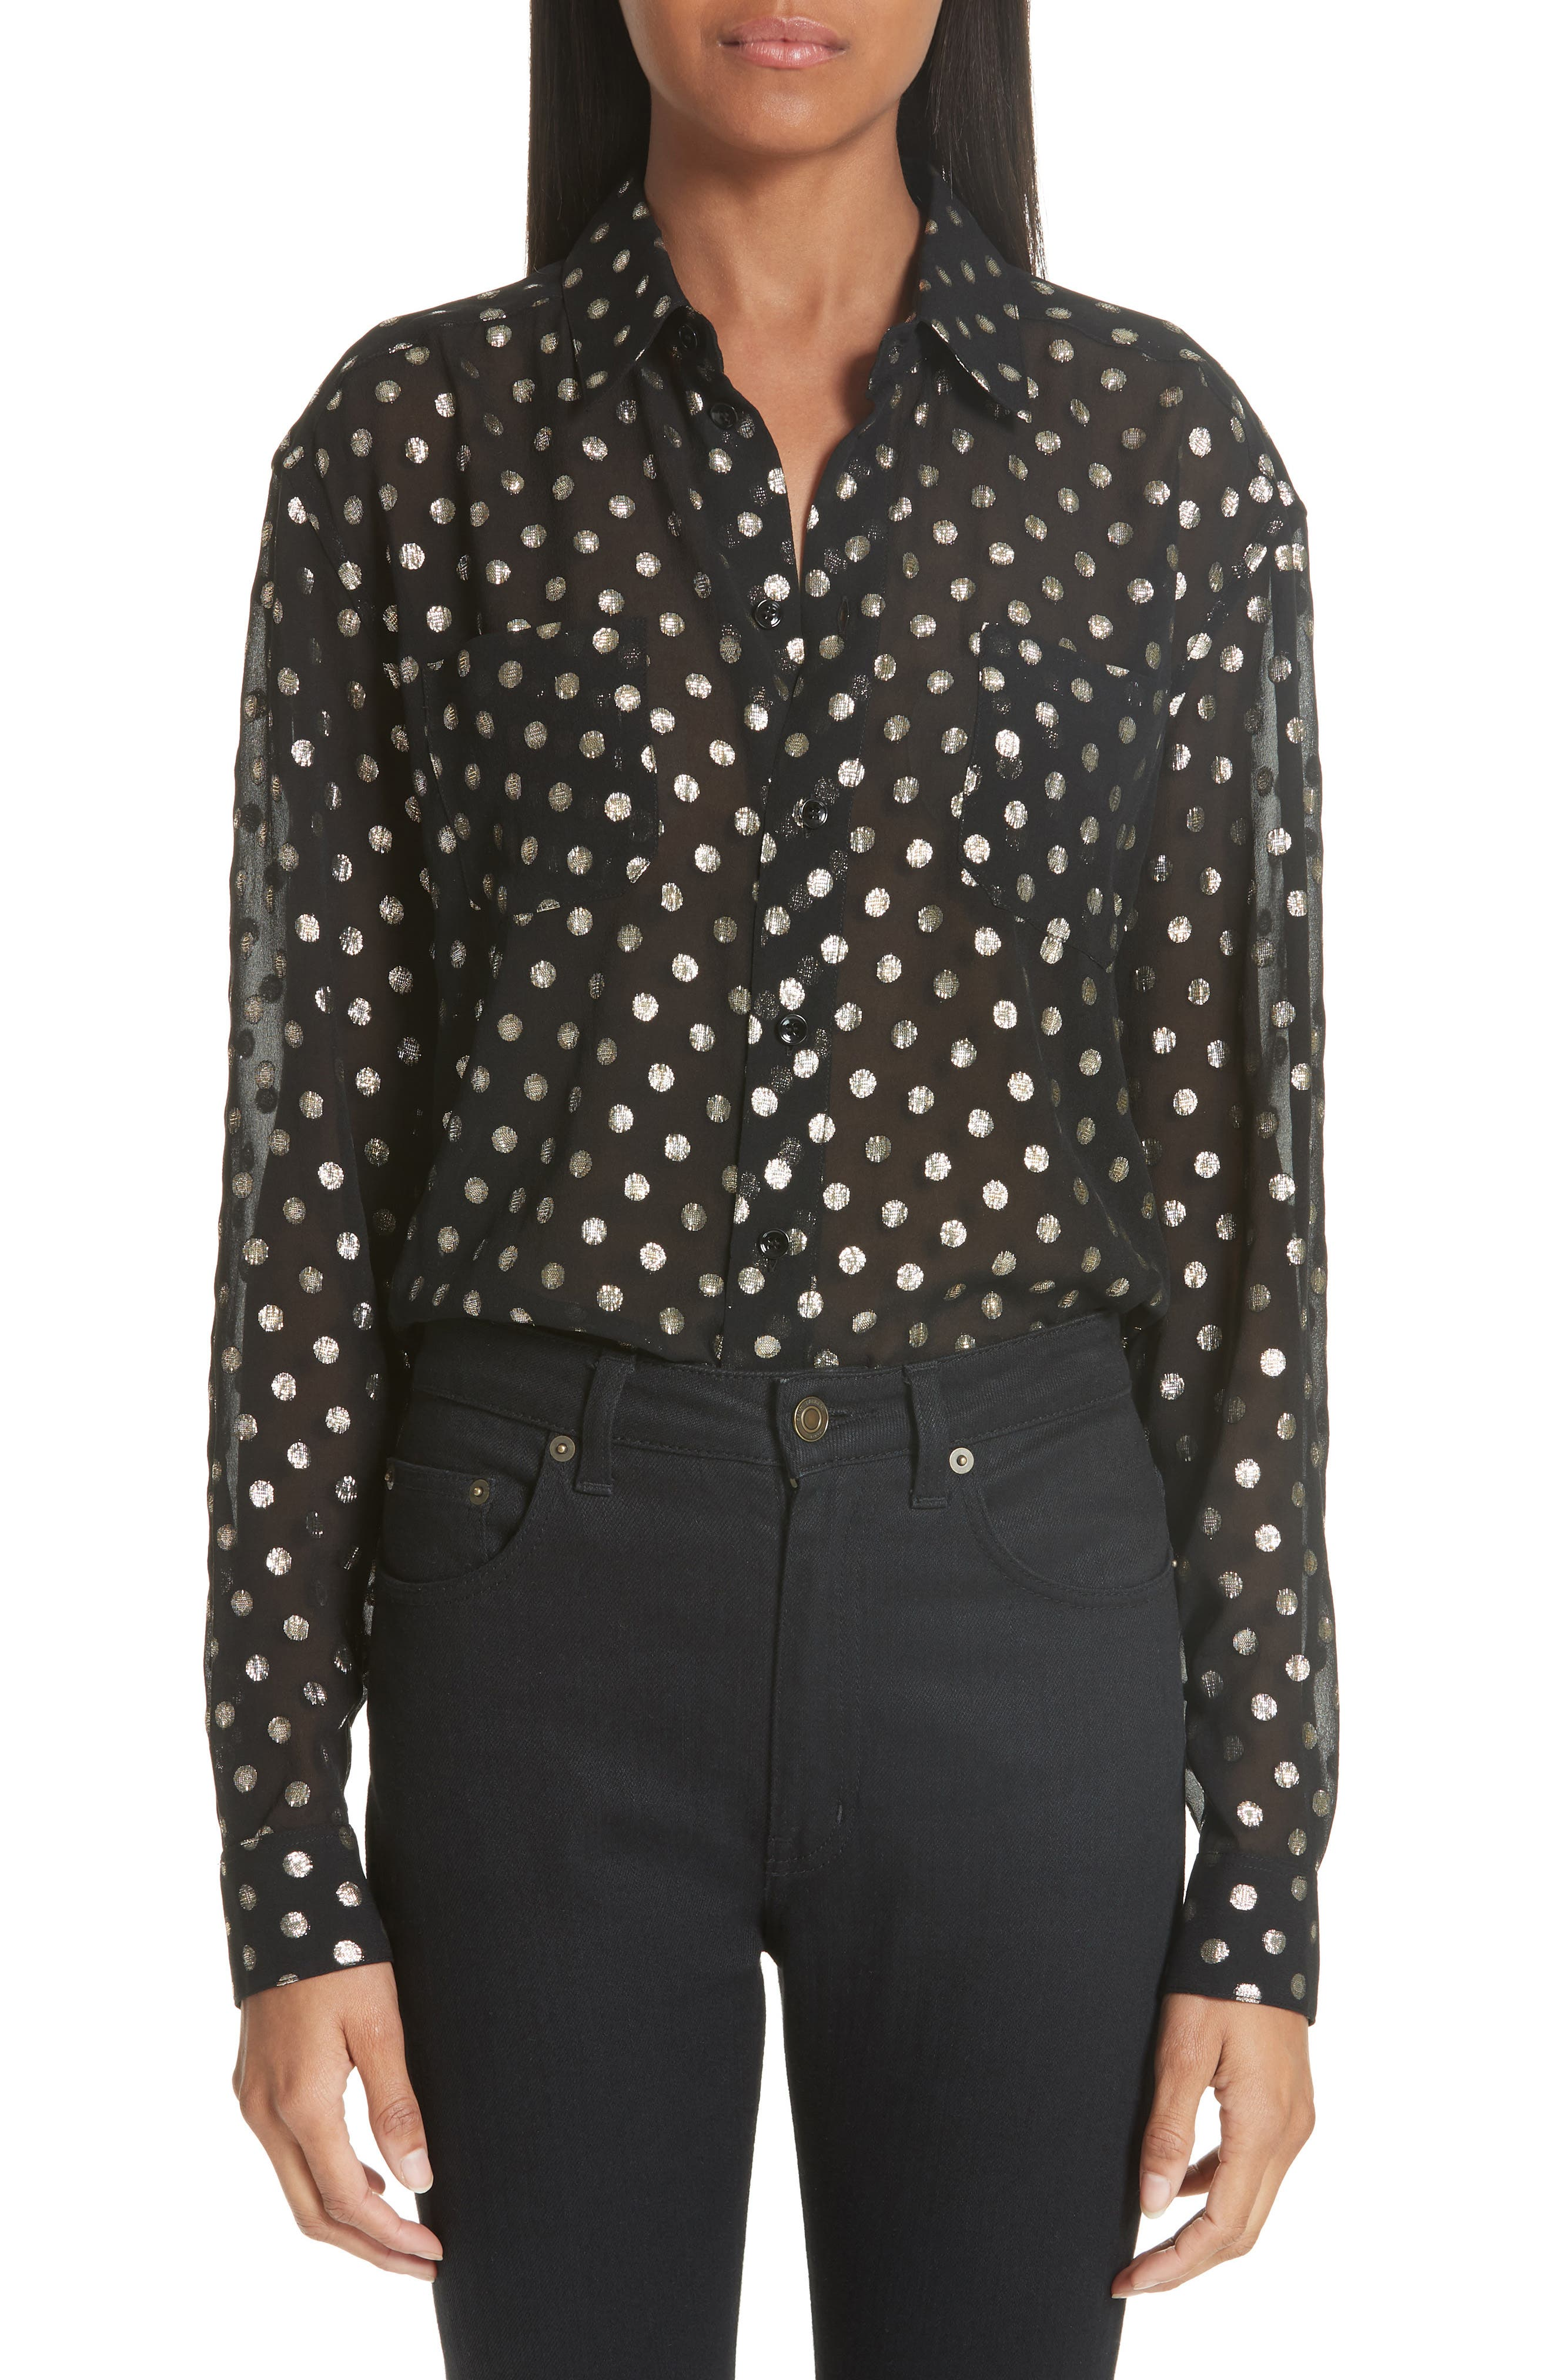 Saint Laurent Lamé Polka Dot Silk Georgette Blouse